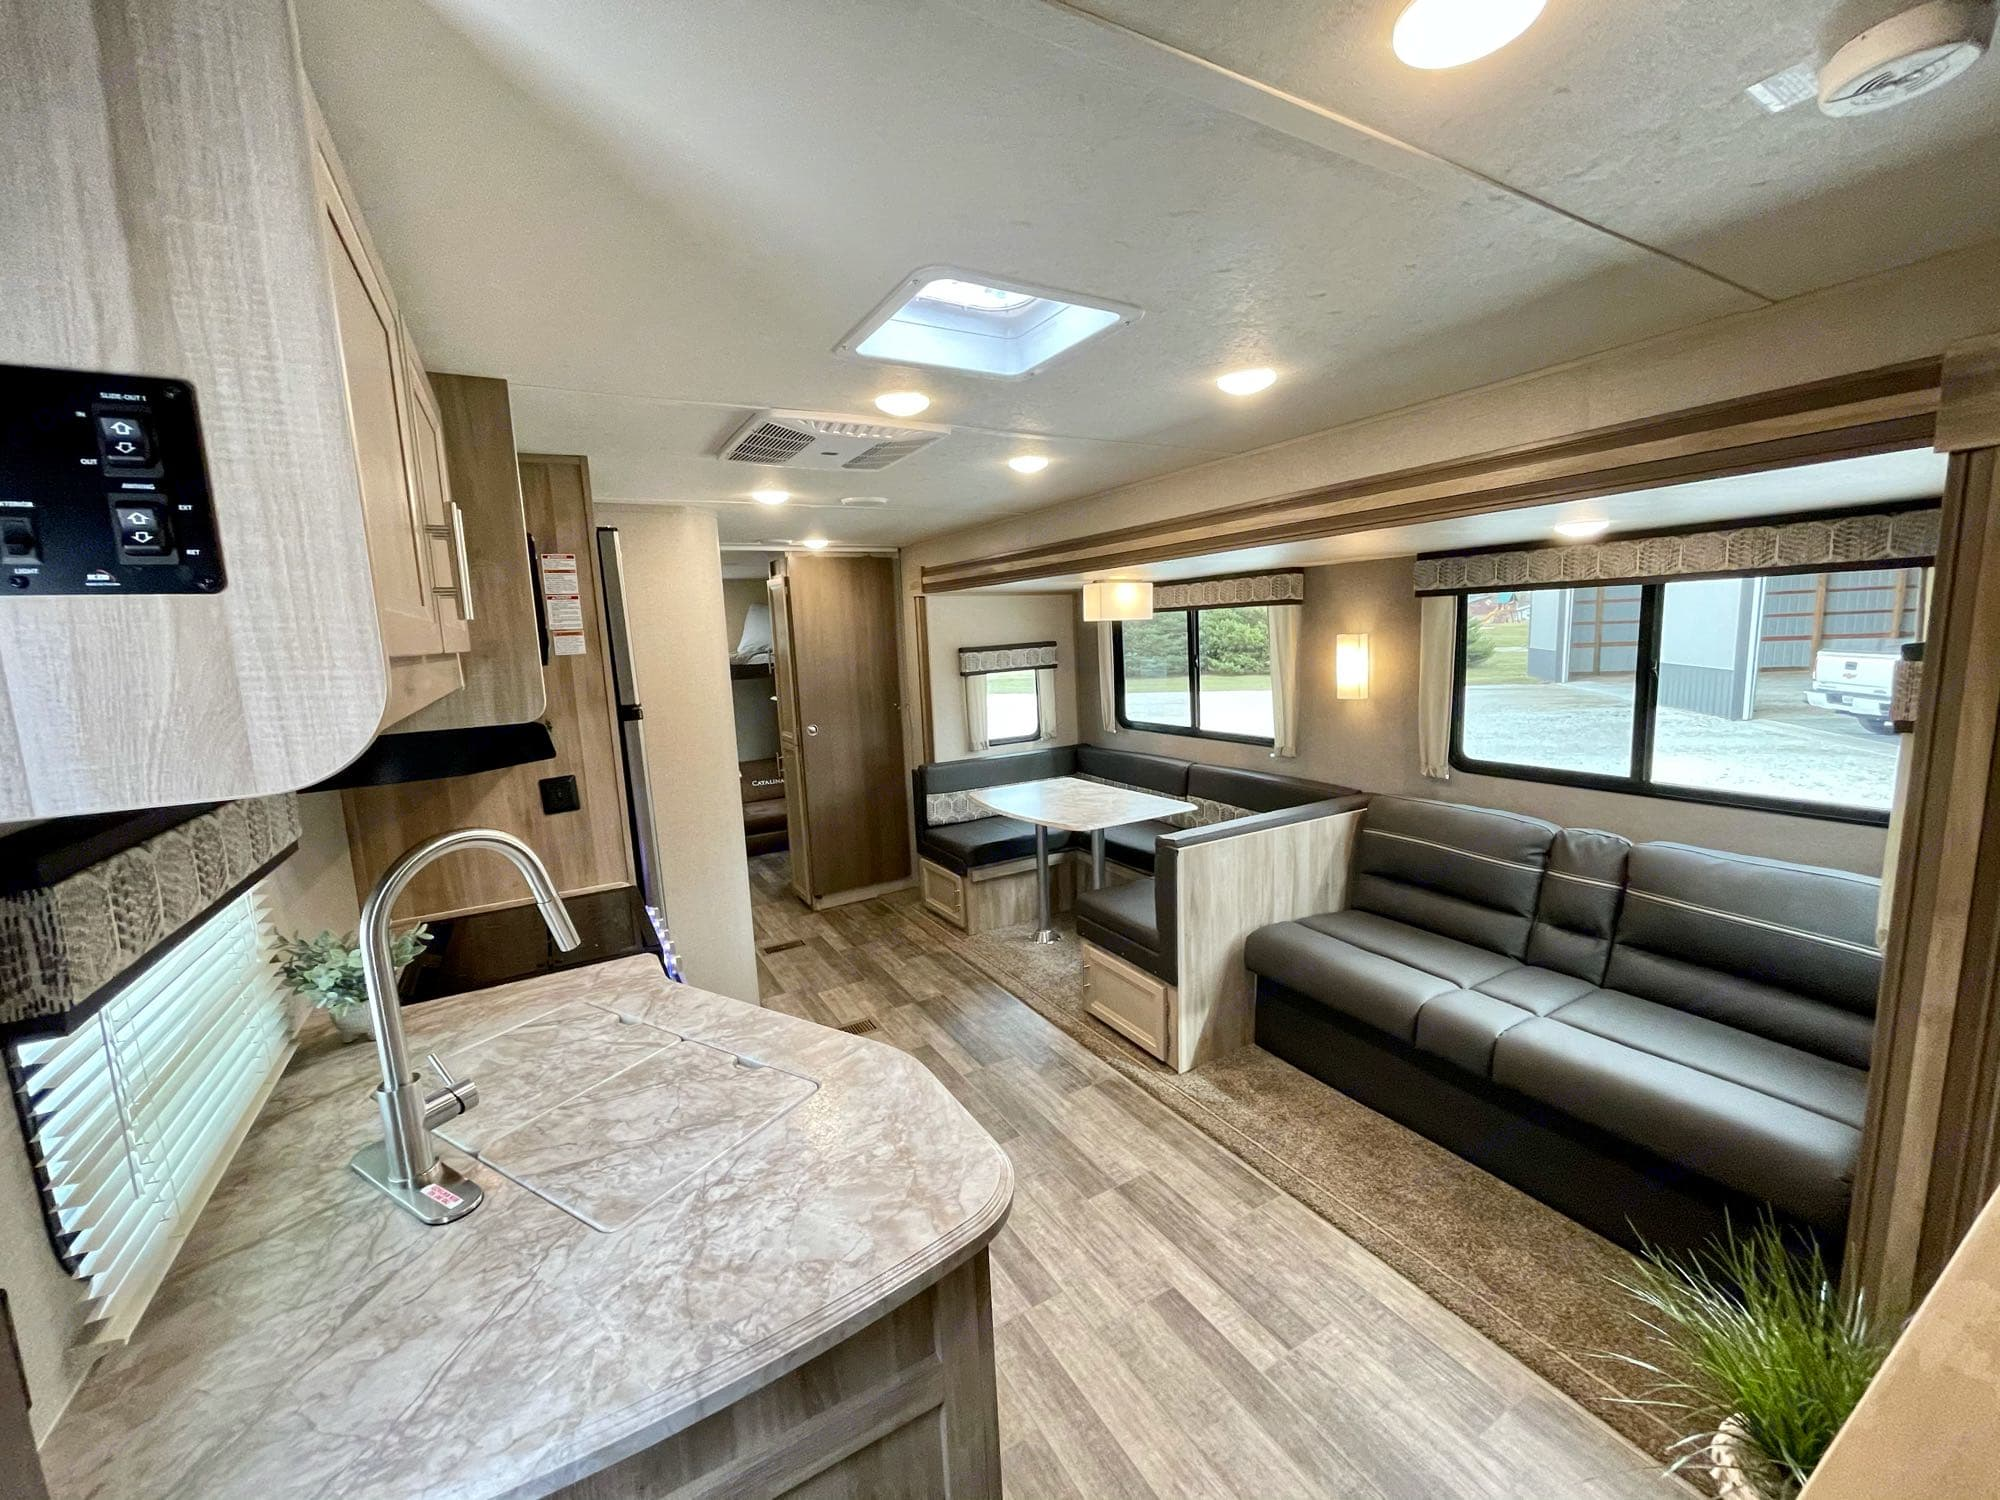 living area/kitchen. u-shaped dinette, gas stove, oven, microwave. Coachmen Catalina 303QBCK 2021